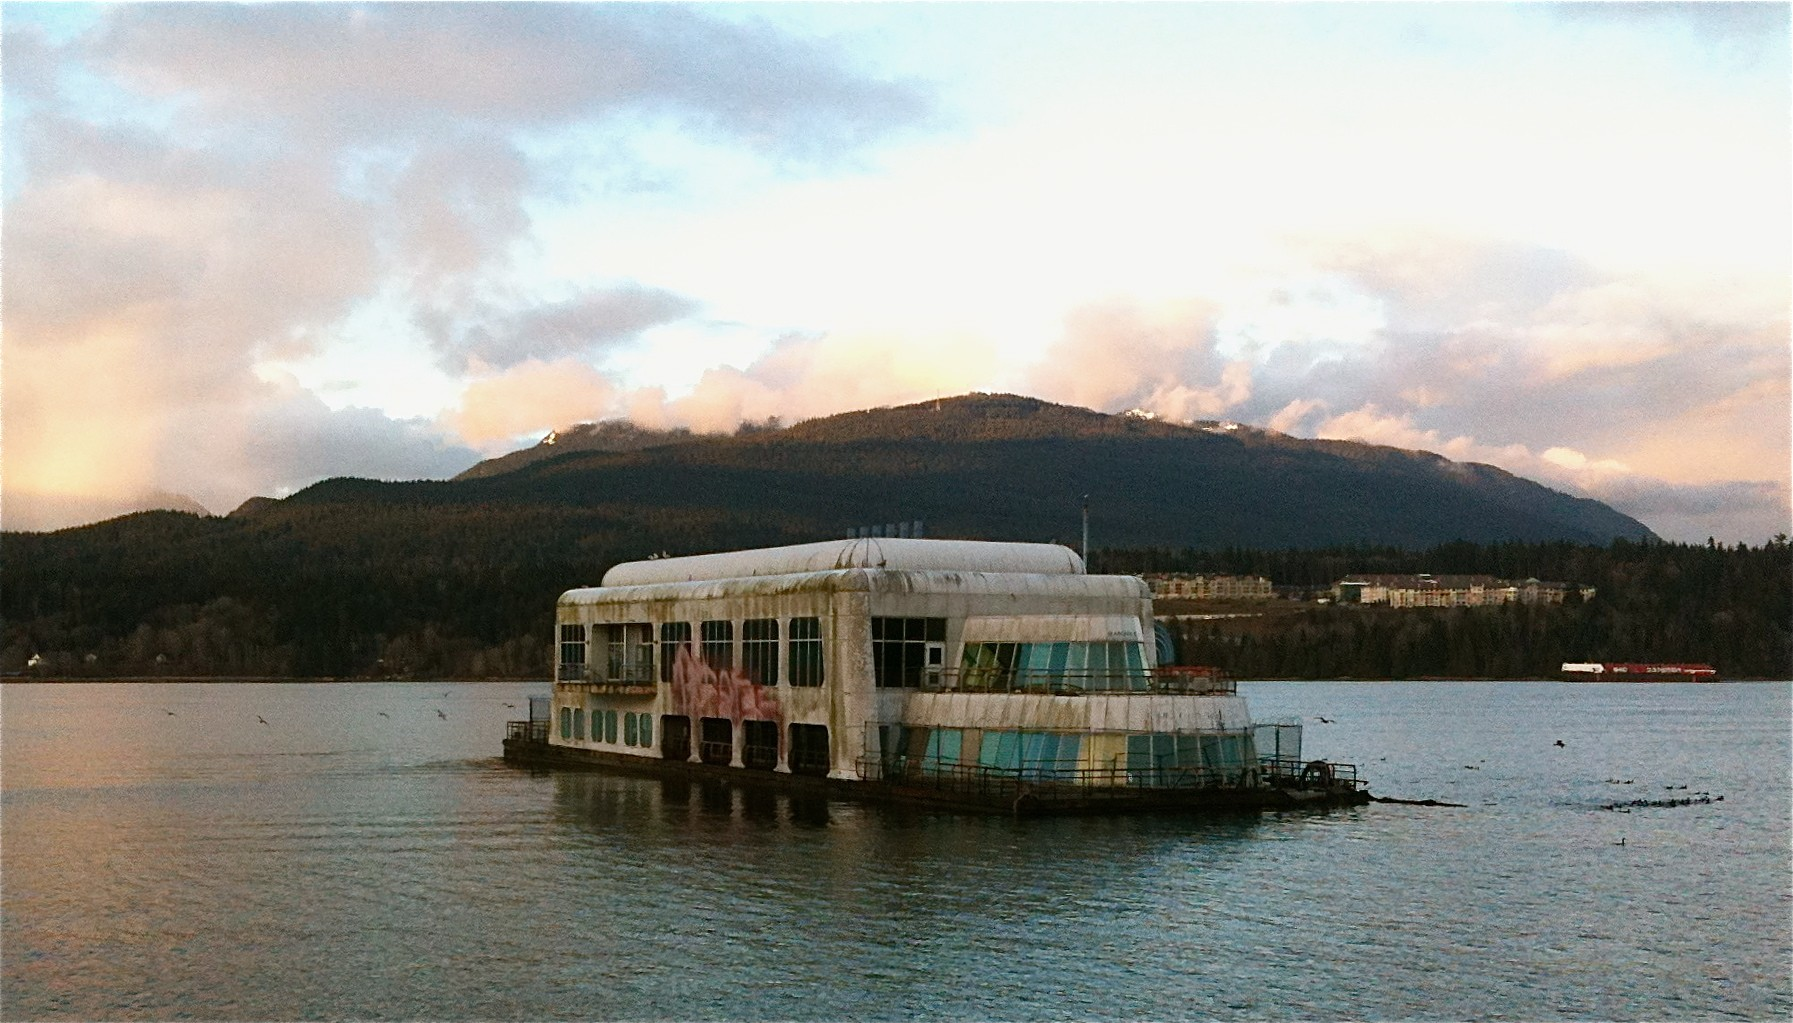 The McDonald's McBarge Rises Again; Investor Pours $4.5 Million Into a Makeover